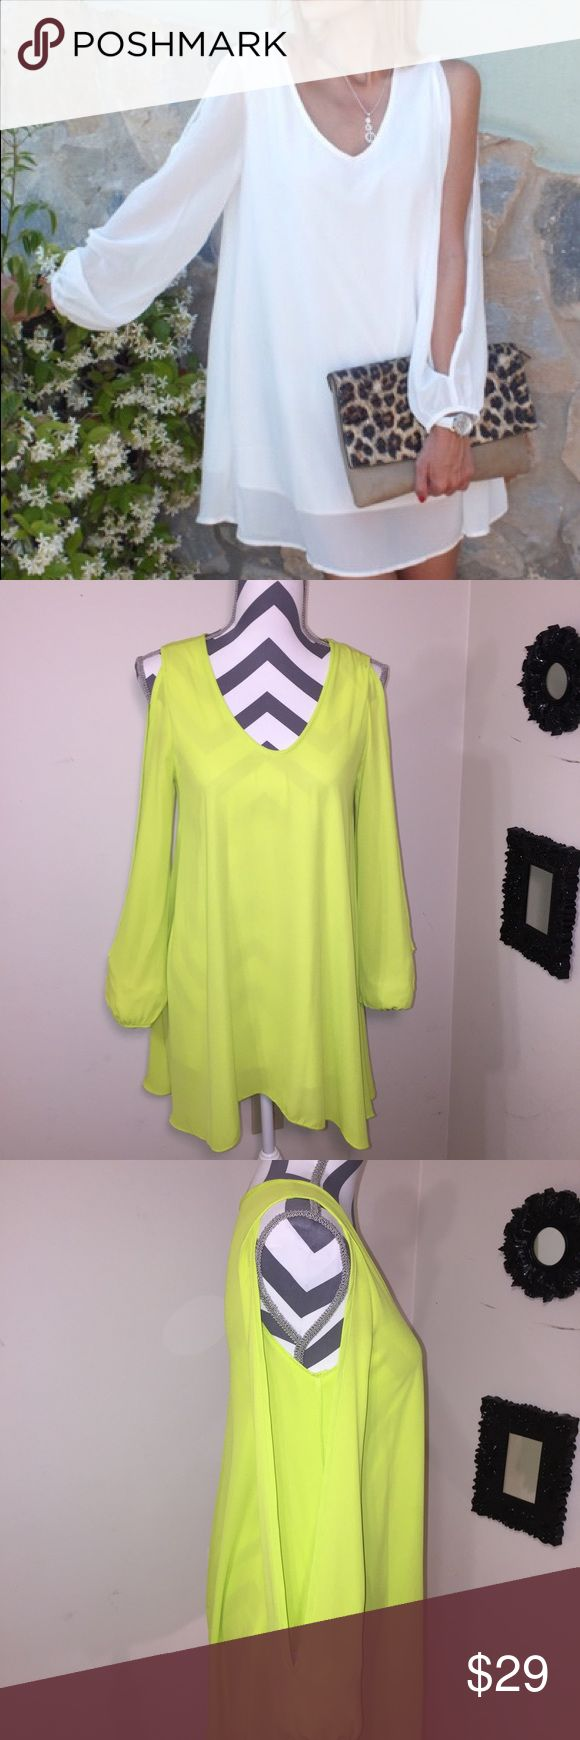 💚Not this color💚Neon Yellow Dress Pre loved gently used totally adorable Sheer neon split sleeve dress. Dresses Midi